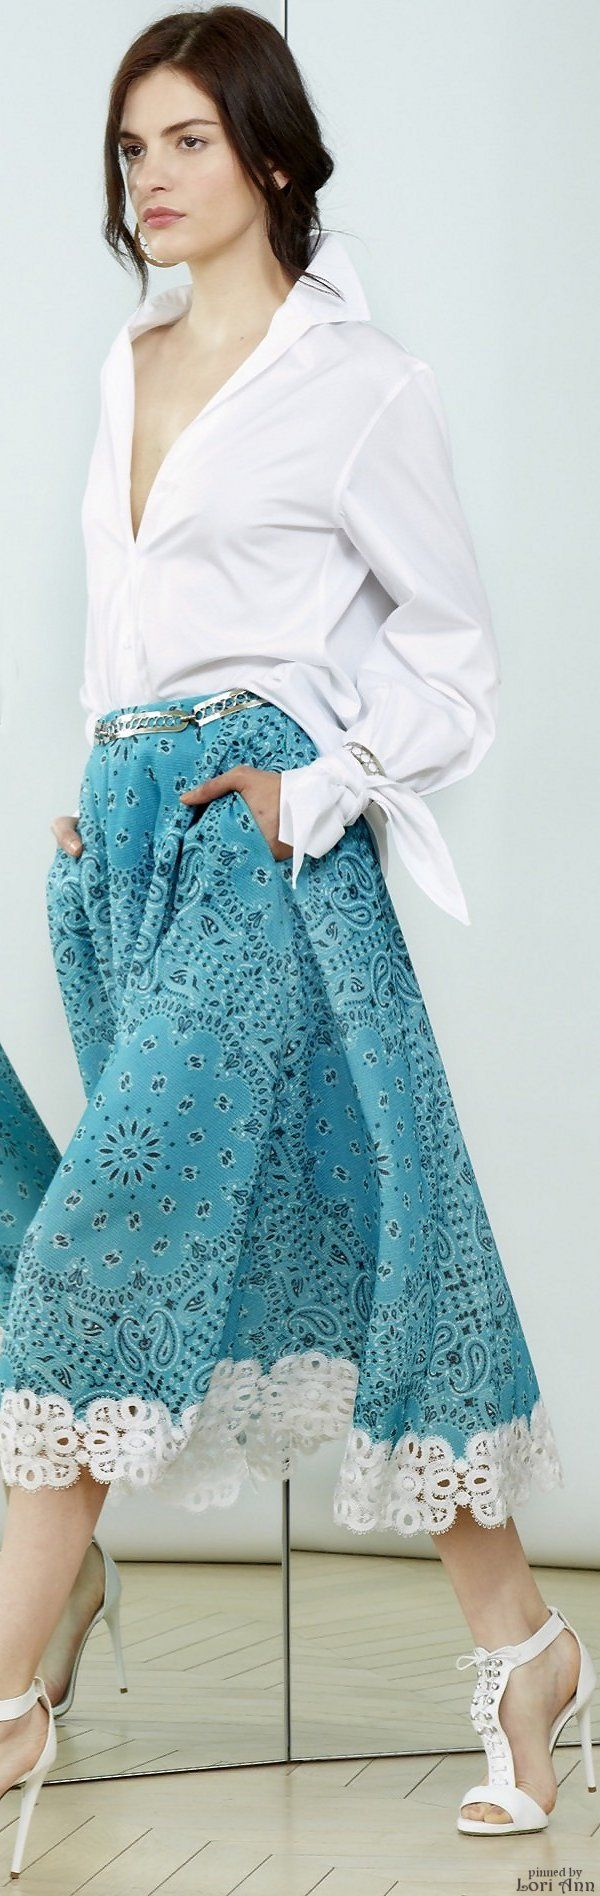 Alexis Mabille Resort 2016 women fashion outfit clothing style apparel @roressclothes closet ideas